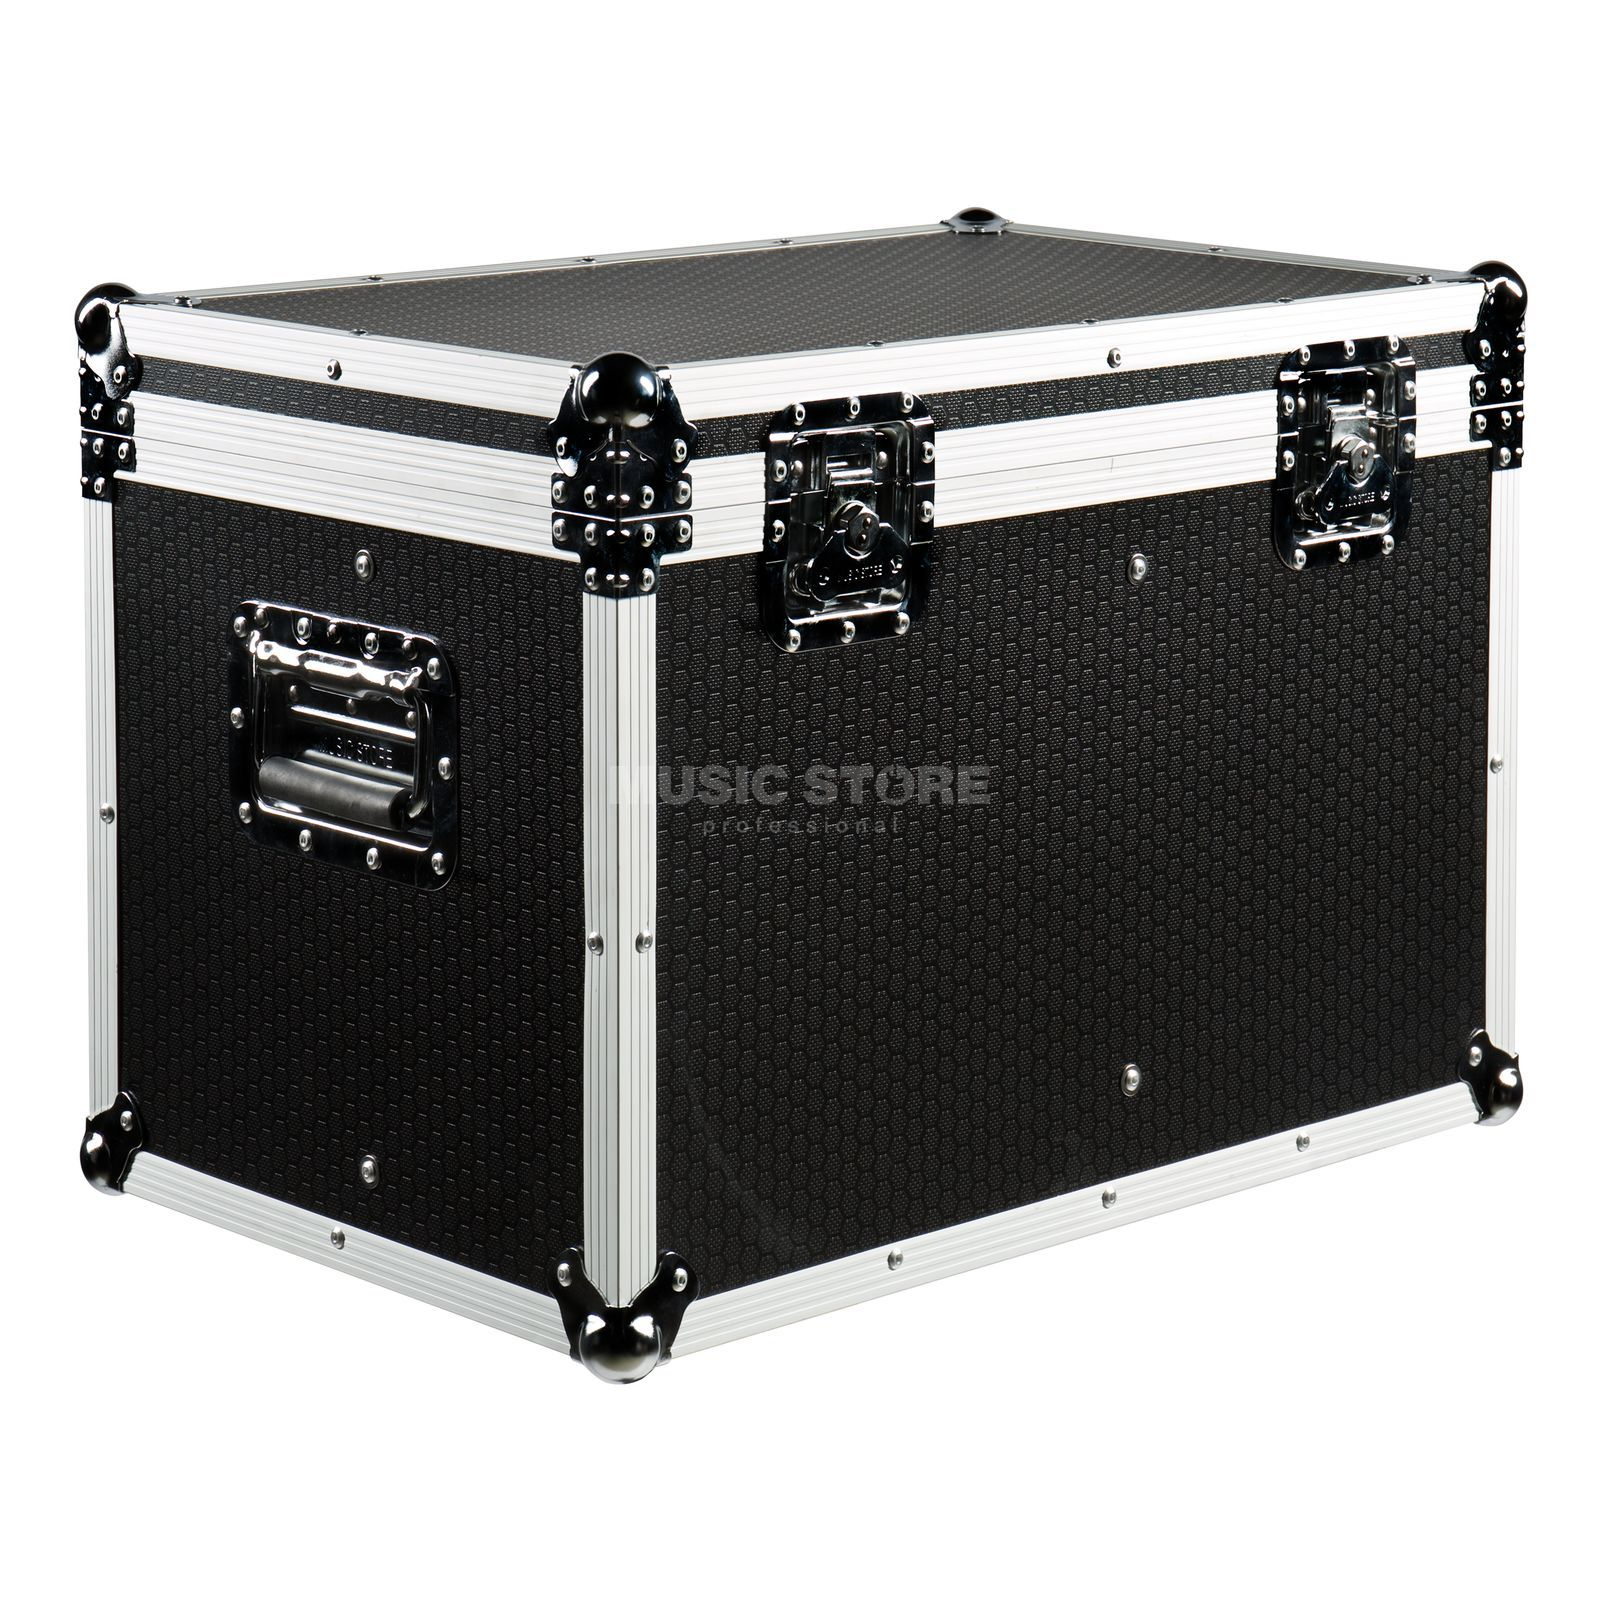 lightmaXX TOUR CASE 4x PROSpot50 Product Image